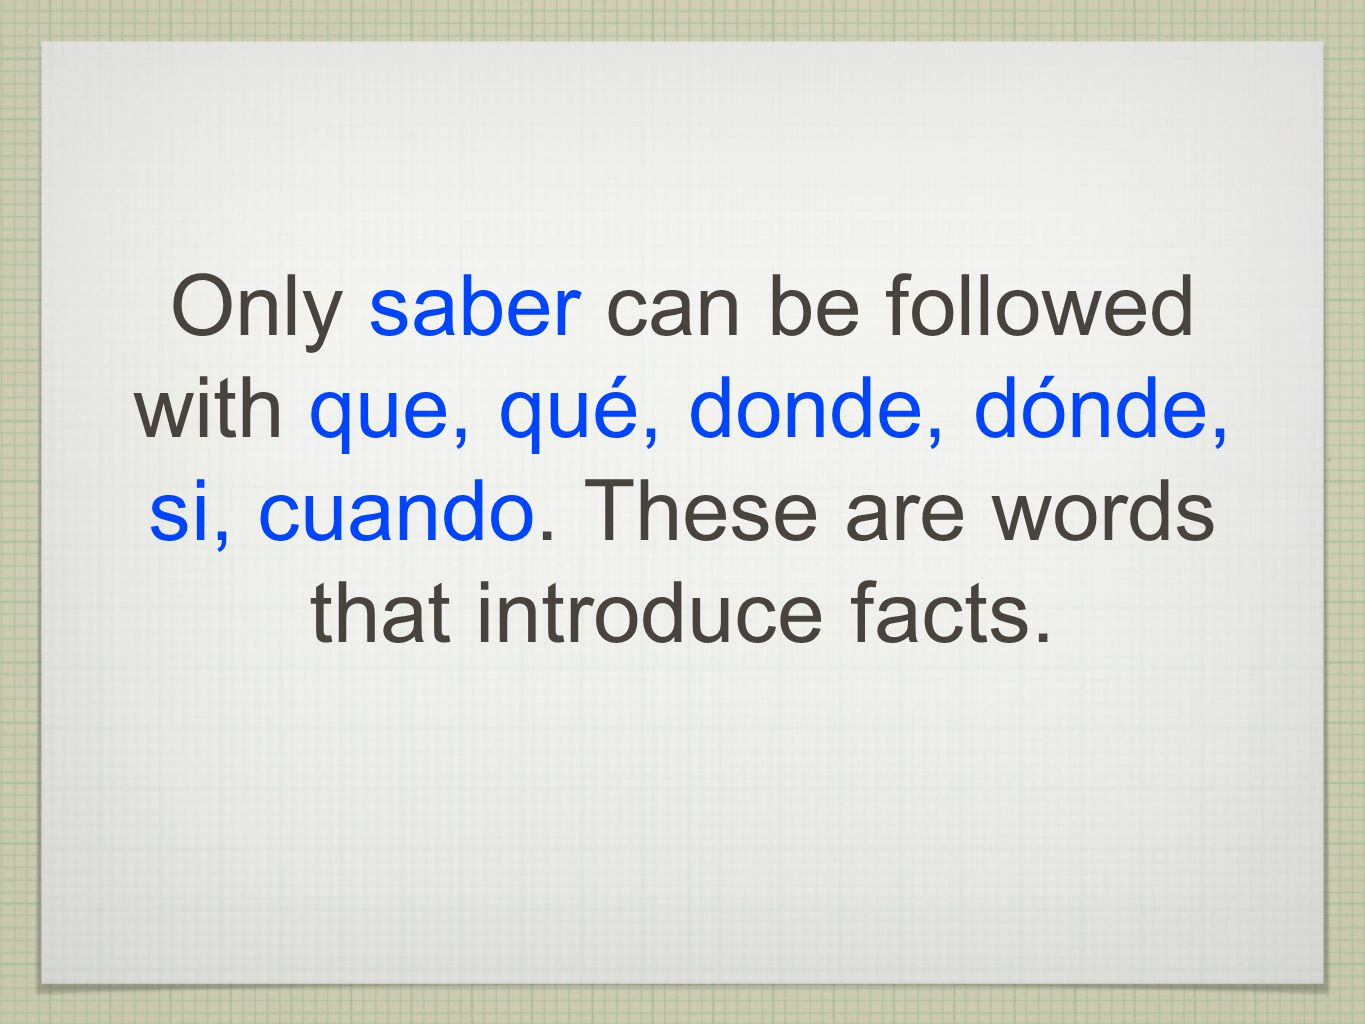 Only saber can be followed with que, qué, donde, dónde, si, cuando